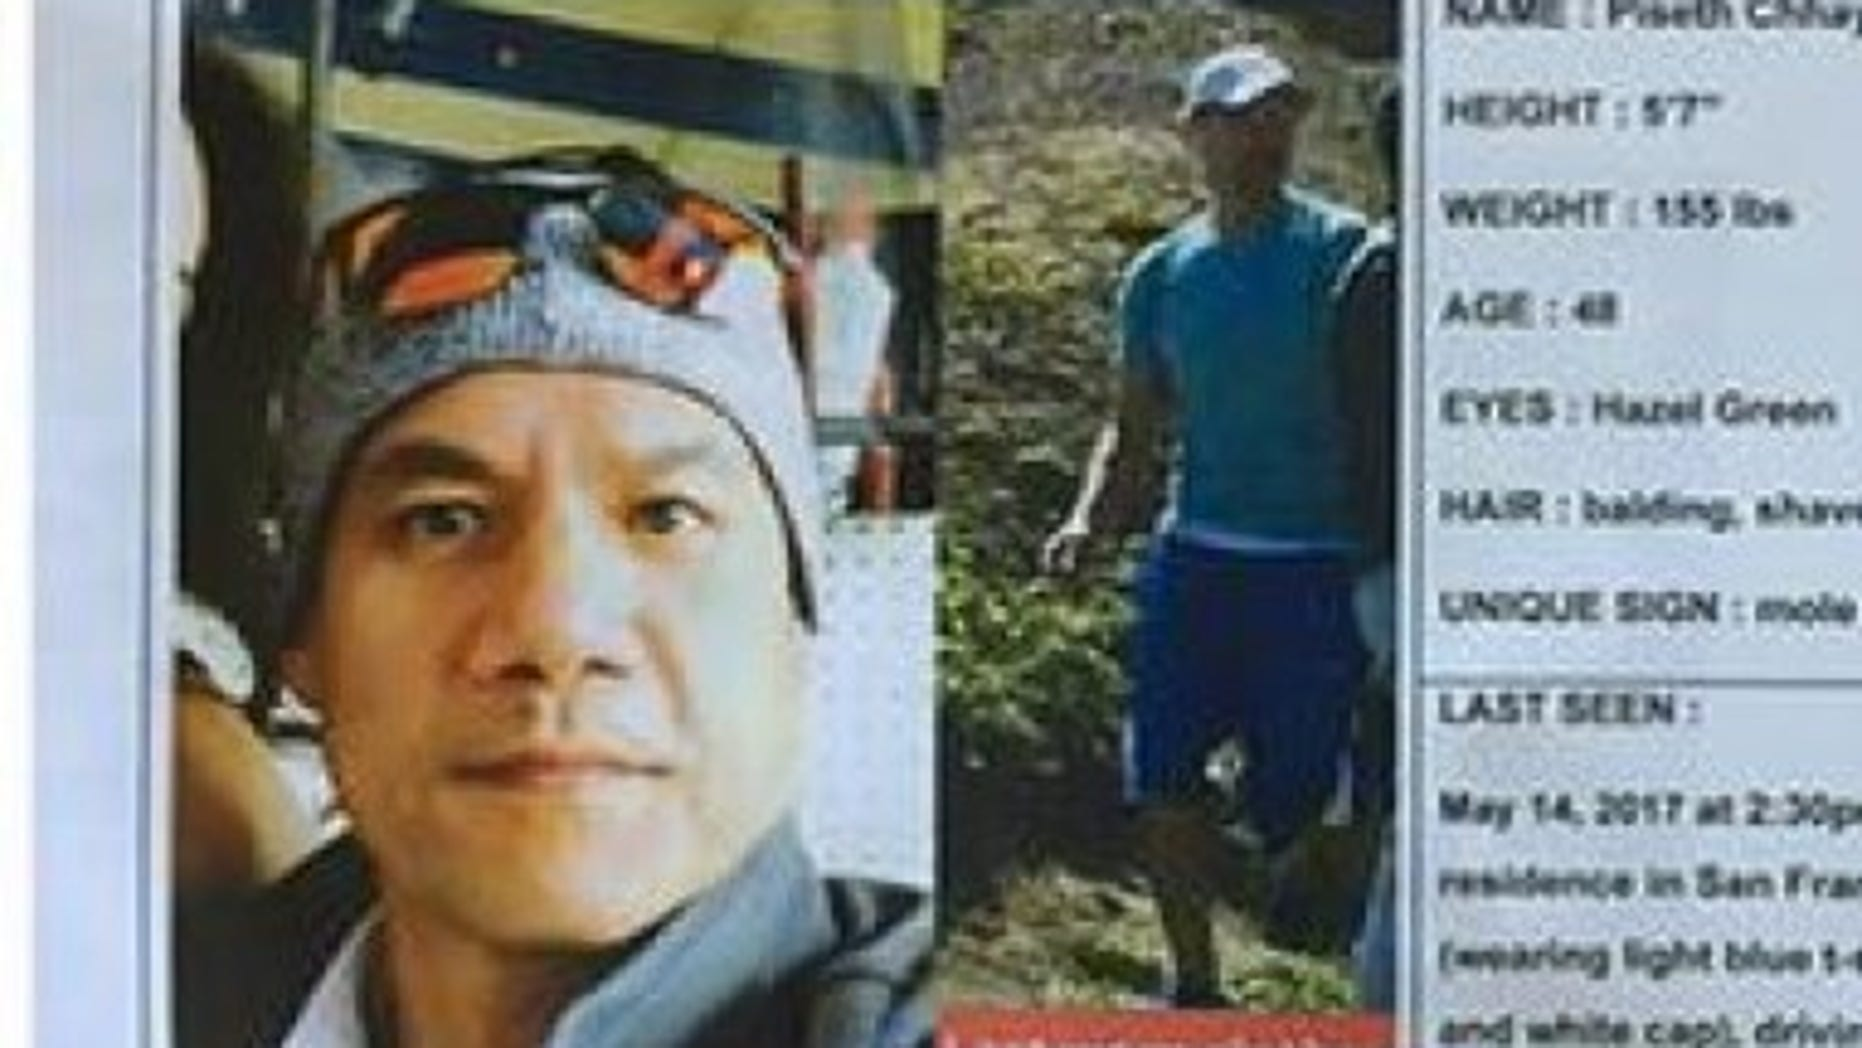 Piseth Chhay, a San Francisco Uber driver, disappeared in May. Investigators believe the human remains discovered at the Hayward warehouse are possibly linked to Chhay. (GoFundMe)